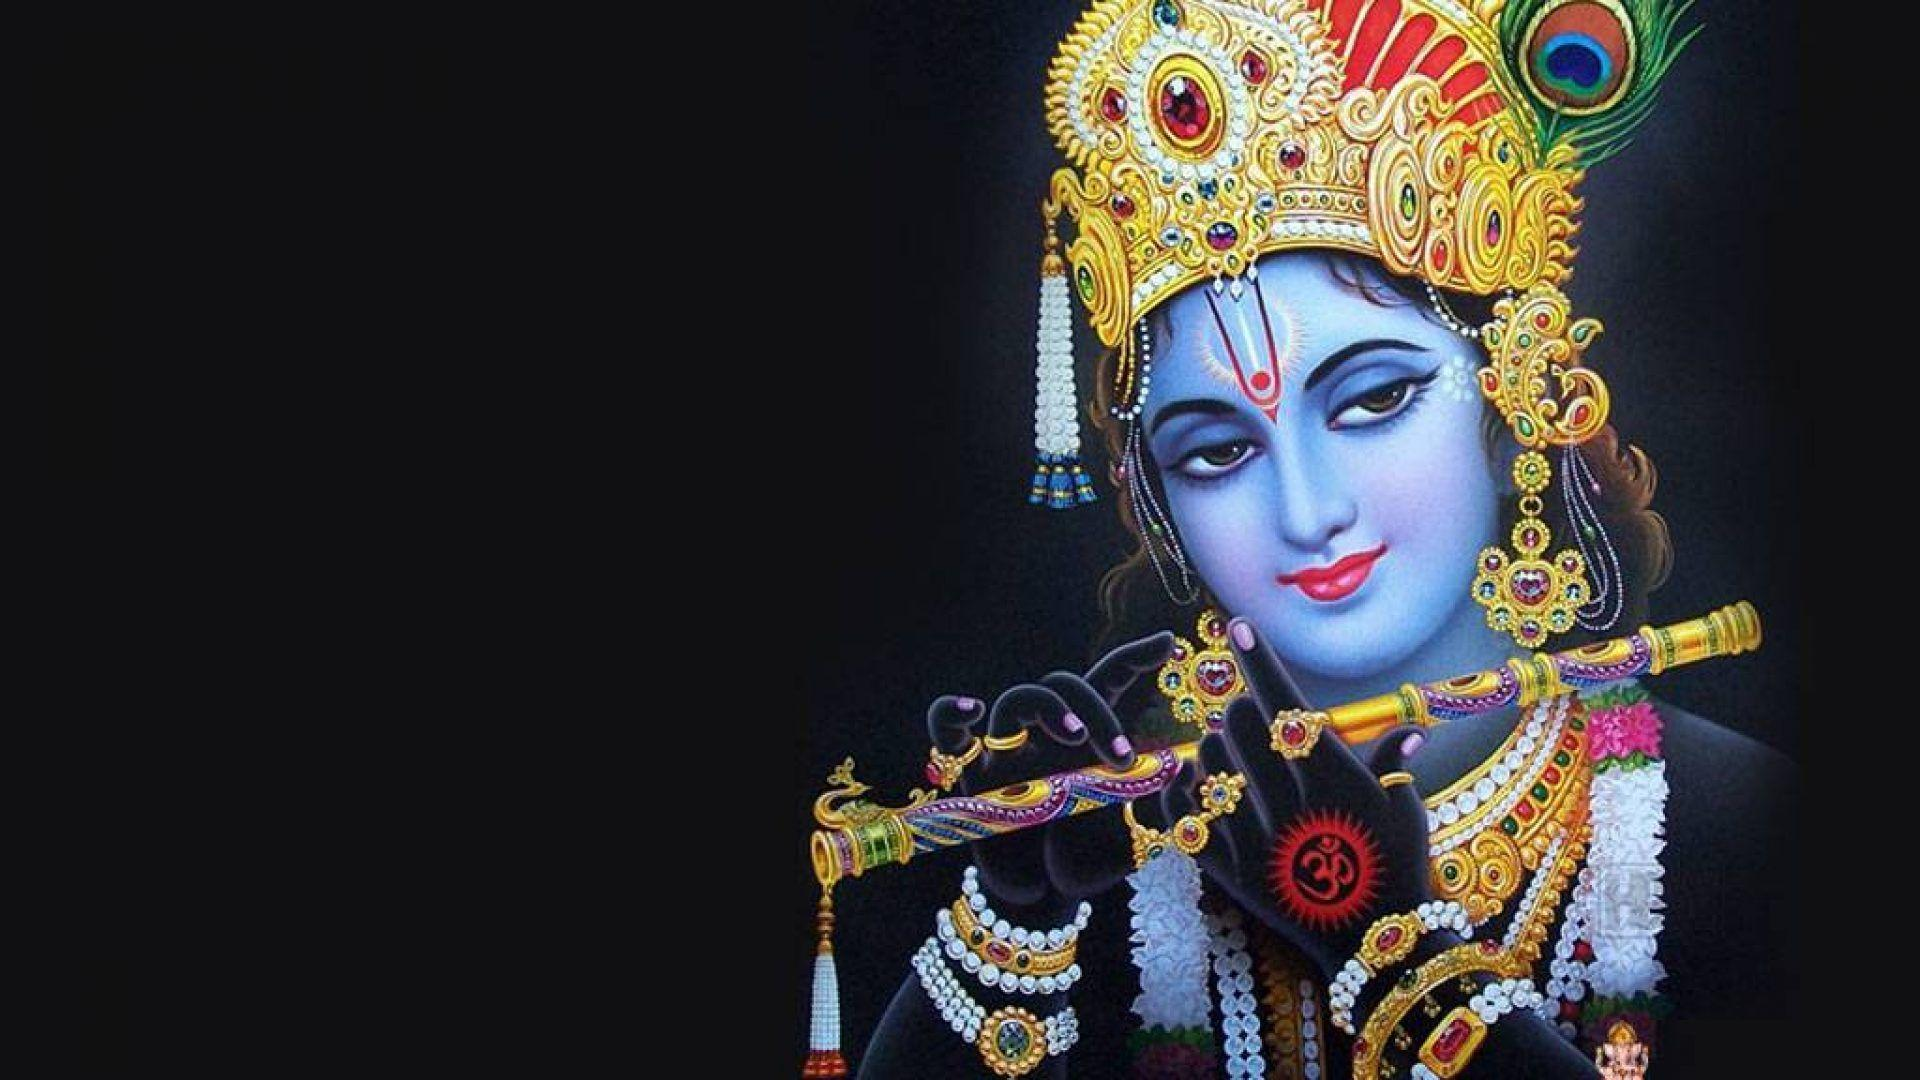 Lord Krishna Wallpapers Hd Wallpaper Cave